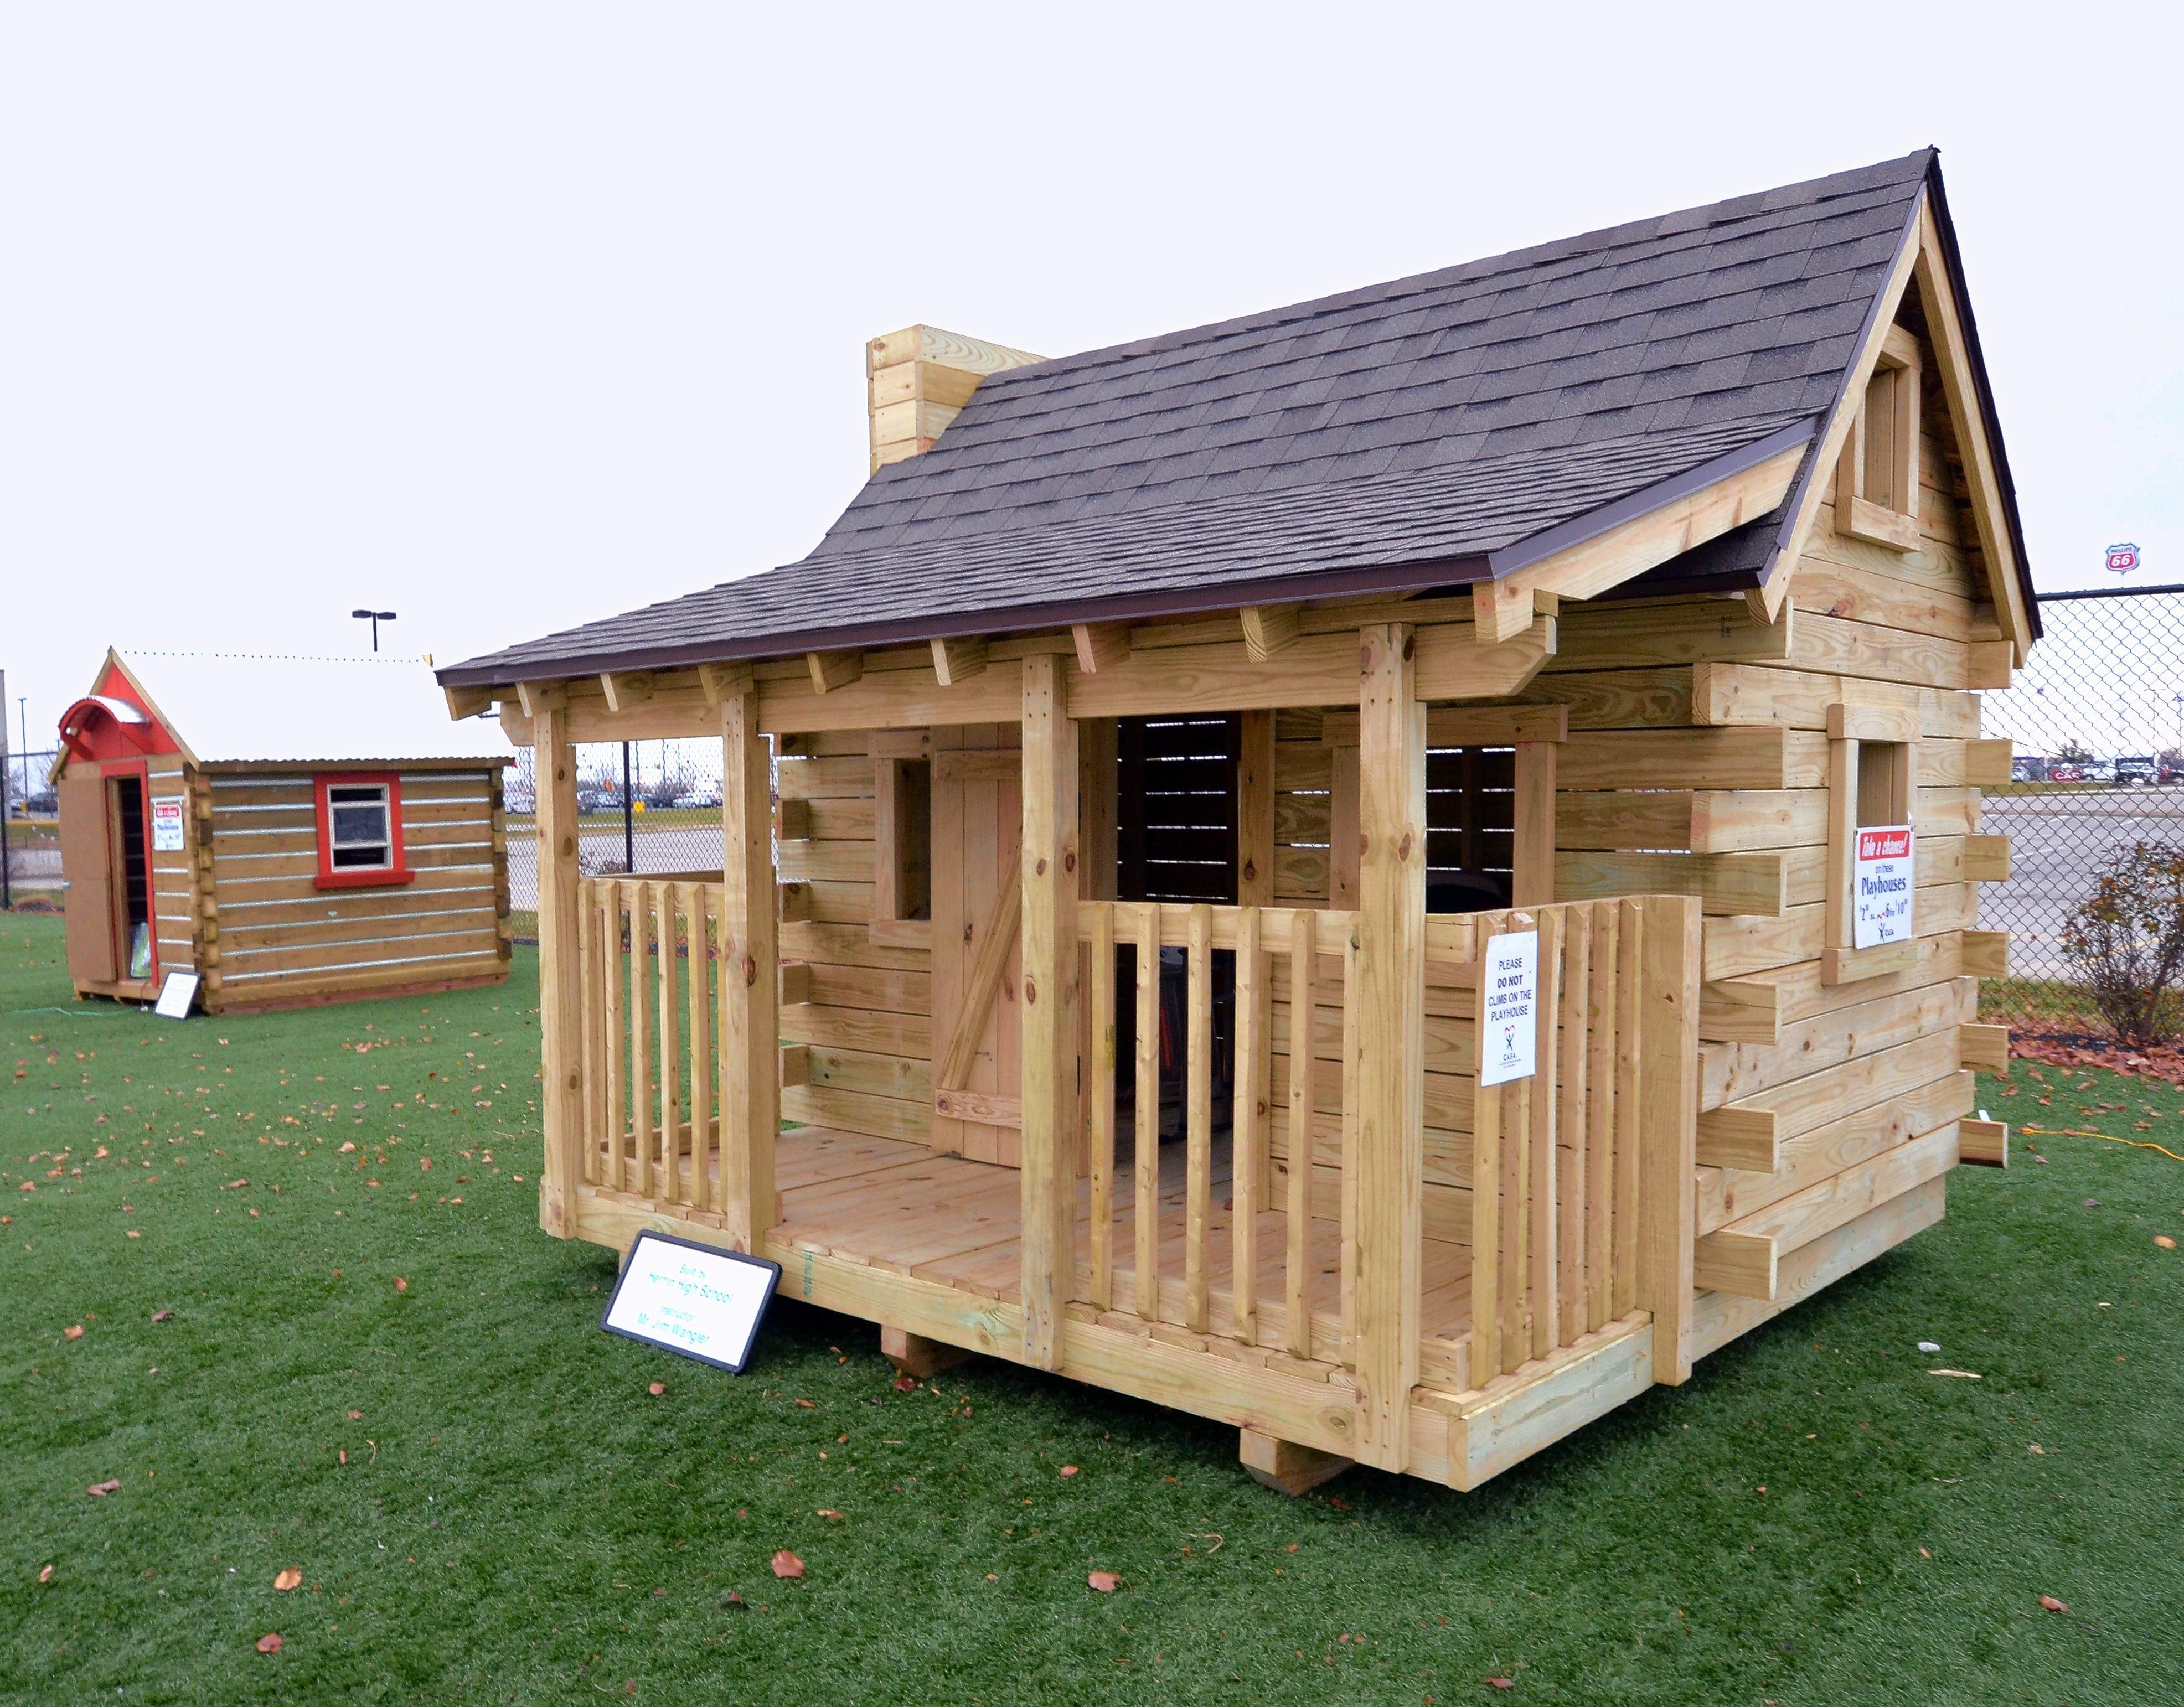 These two playhouses are among six that will be raffled off to raise money for CASA of Williamson County. The playhouses were made by high school students from Marion, Johnston City, Crab Orchard, Carterville, Herrin and Carbondale and are on display at Rent One Park.